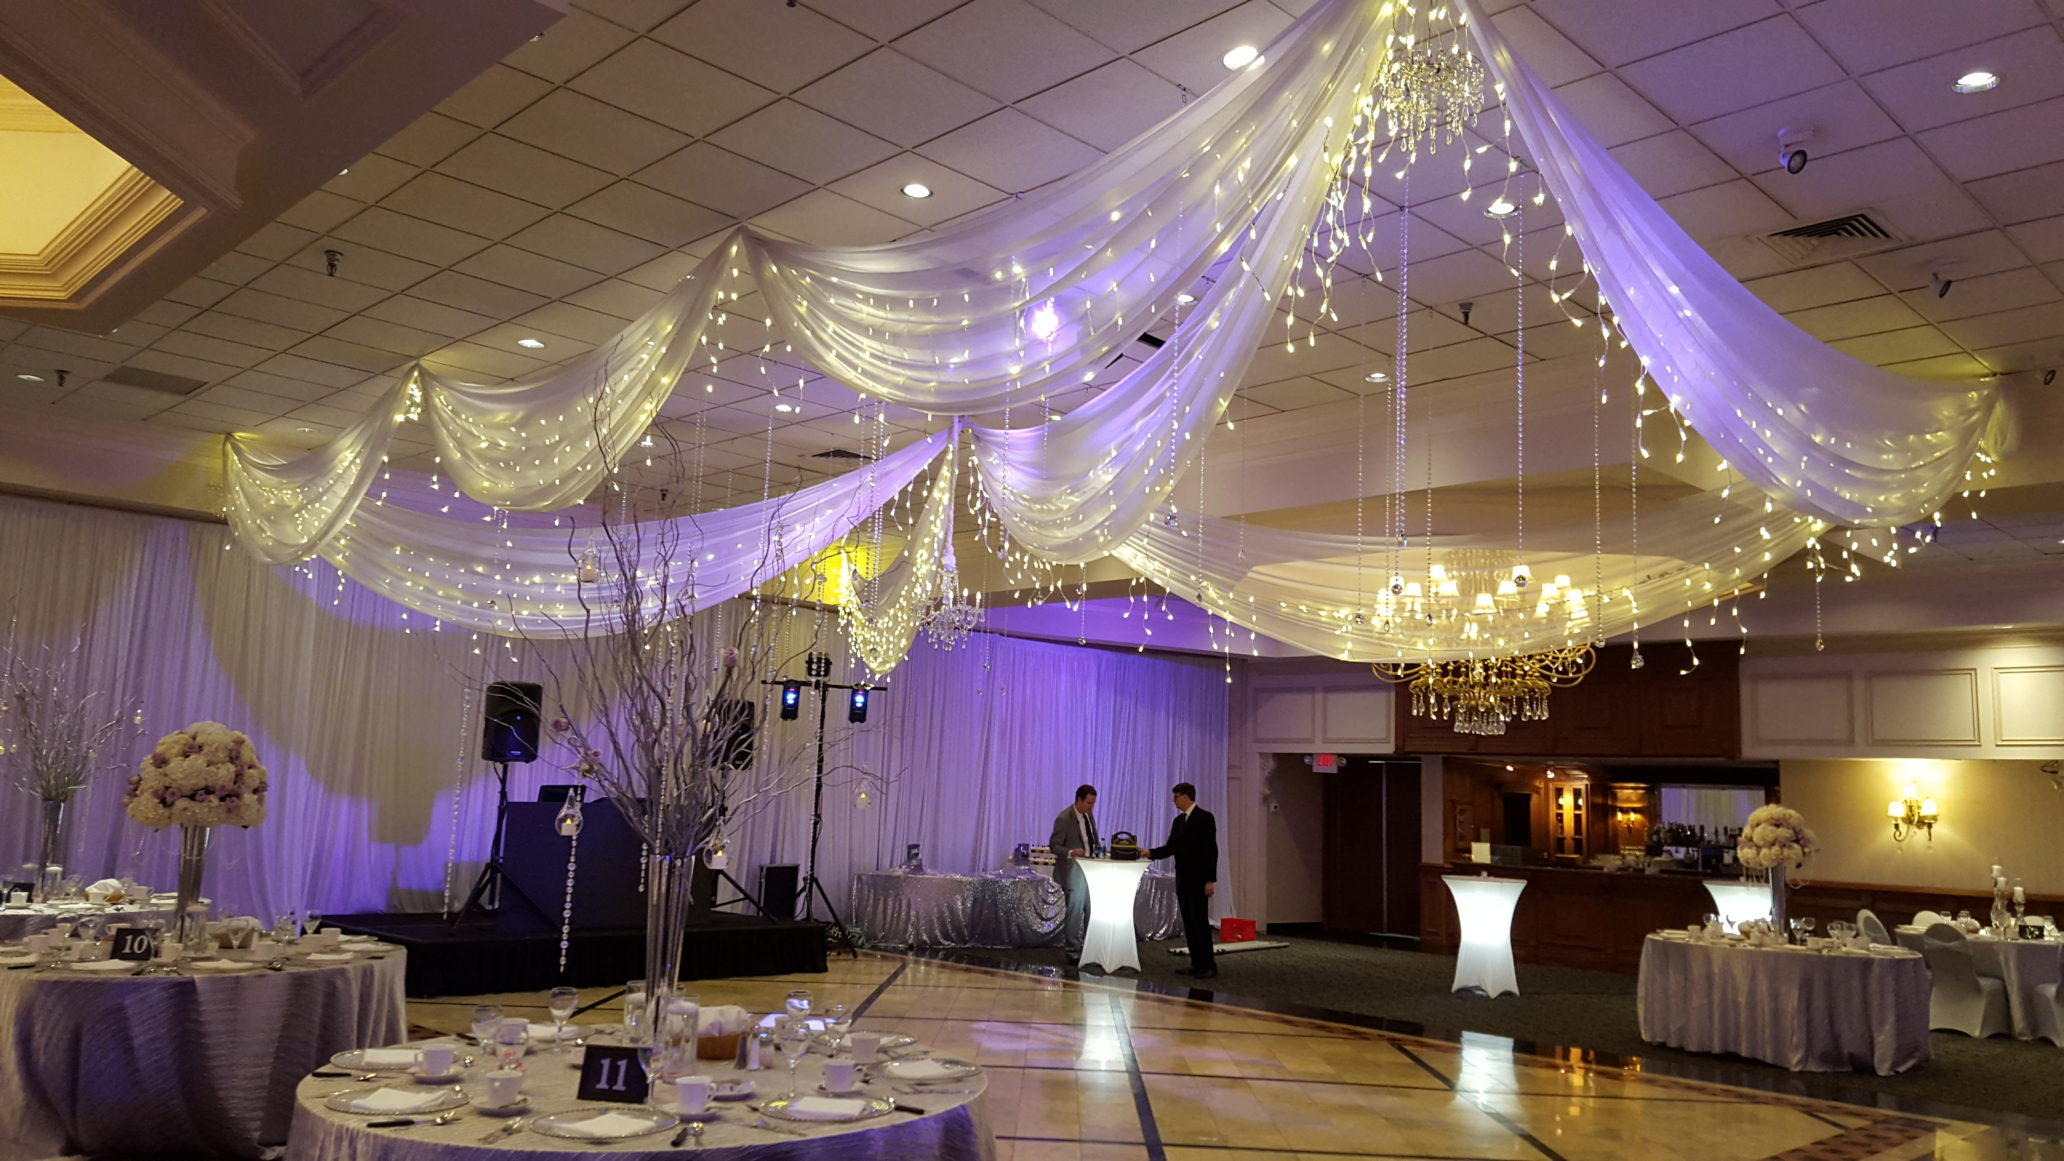 ceiling pinterest really ideas how pin look drapes hang wedding like for to this events